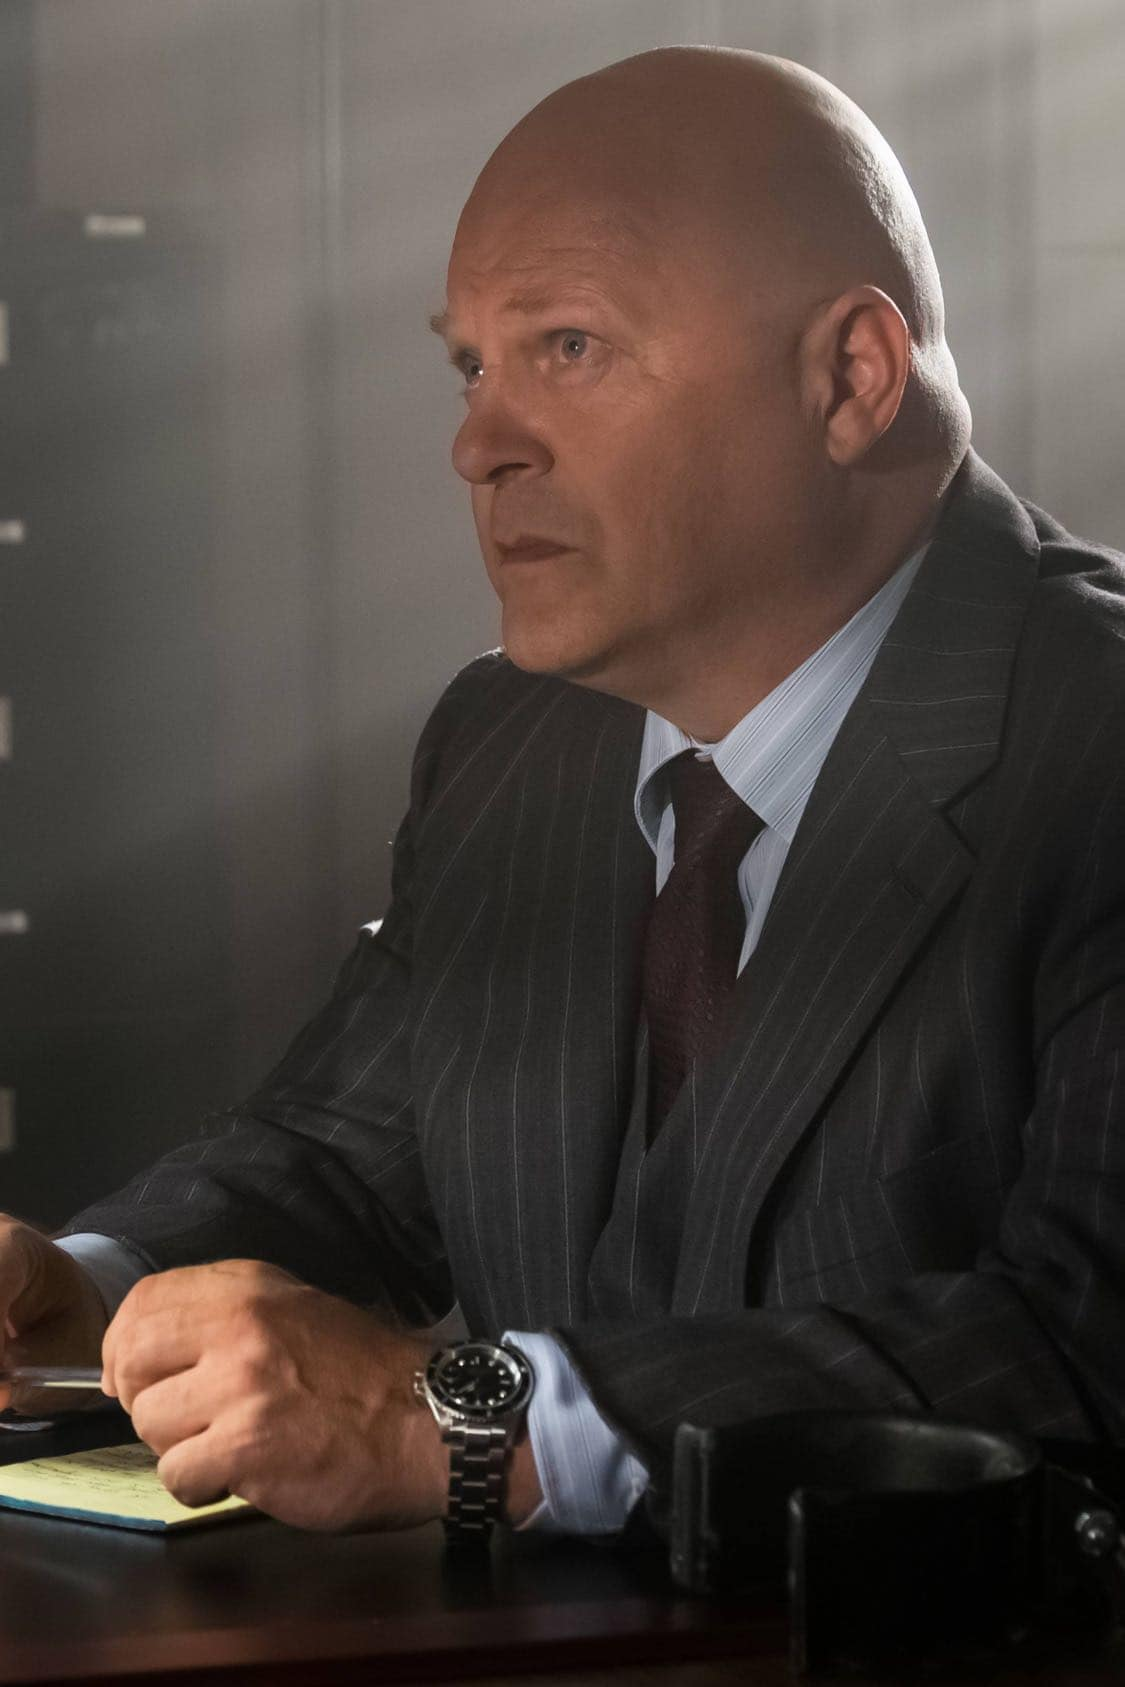 """GOTHAM: Michael Chiklis in the""""Mad City: Look Into My Eyes"""" episode of GOTHAM airing Monday, Oct. 3 (8:00-9:01 PM ET/PT) on FOX.  ©2016 Fox Broadcasting Co. Cr: Jeff Neumann/FOX."""